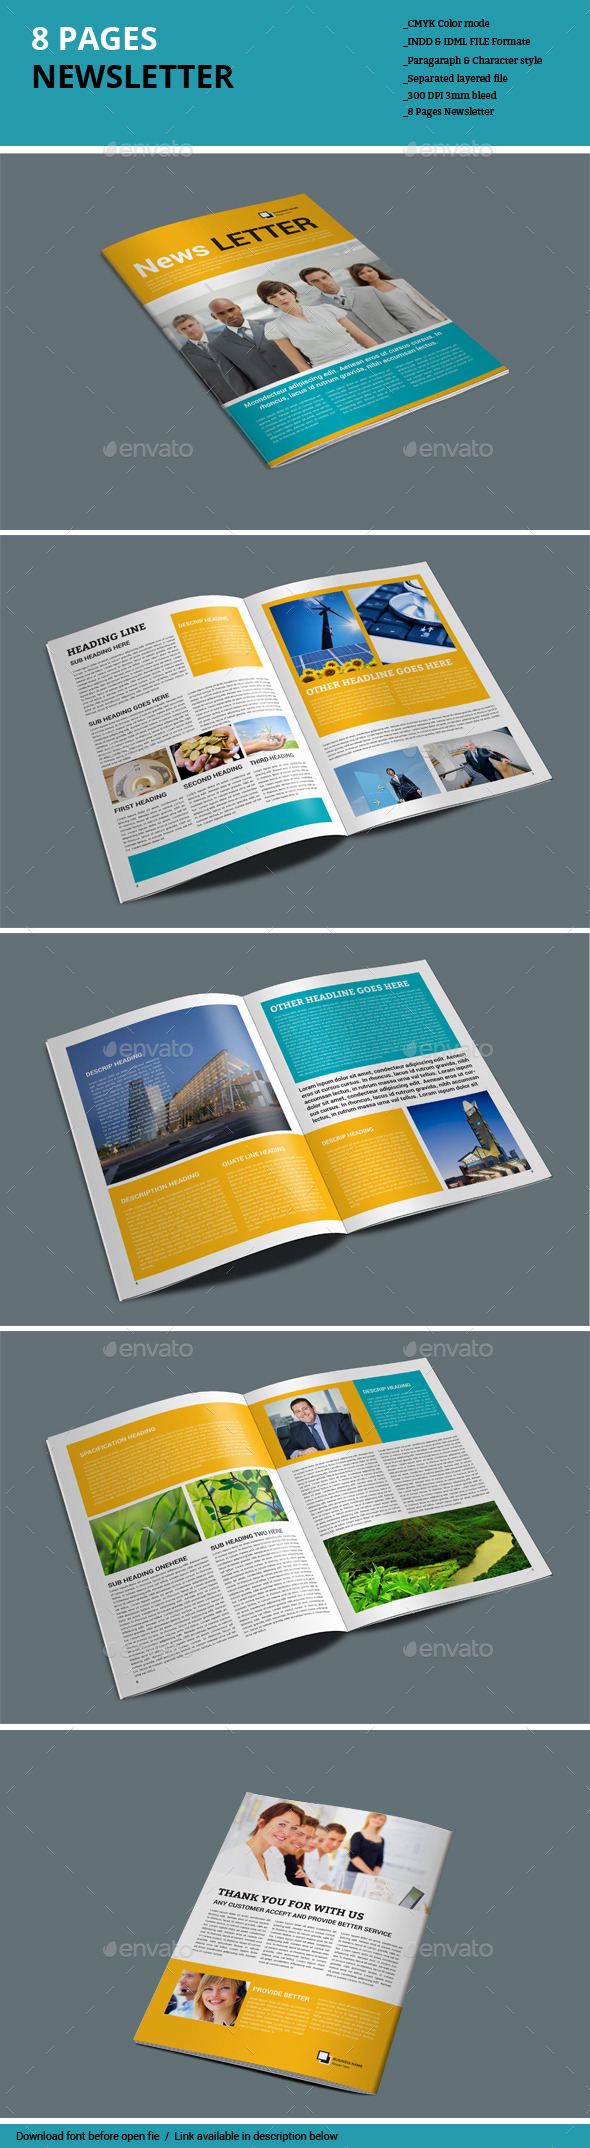 8 Pages Newsletter - Newsletters Print Templates